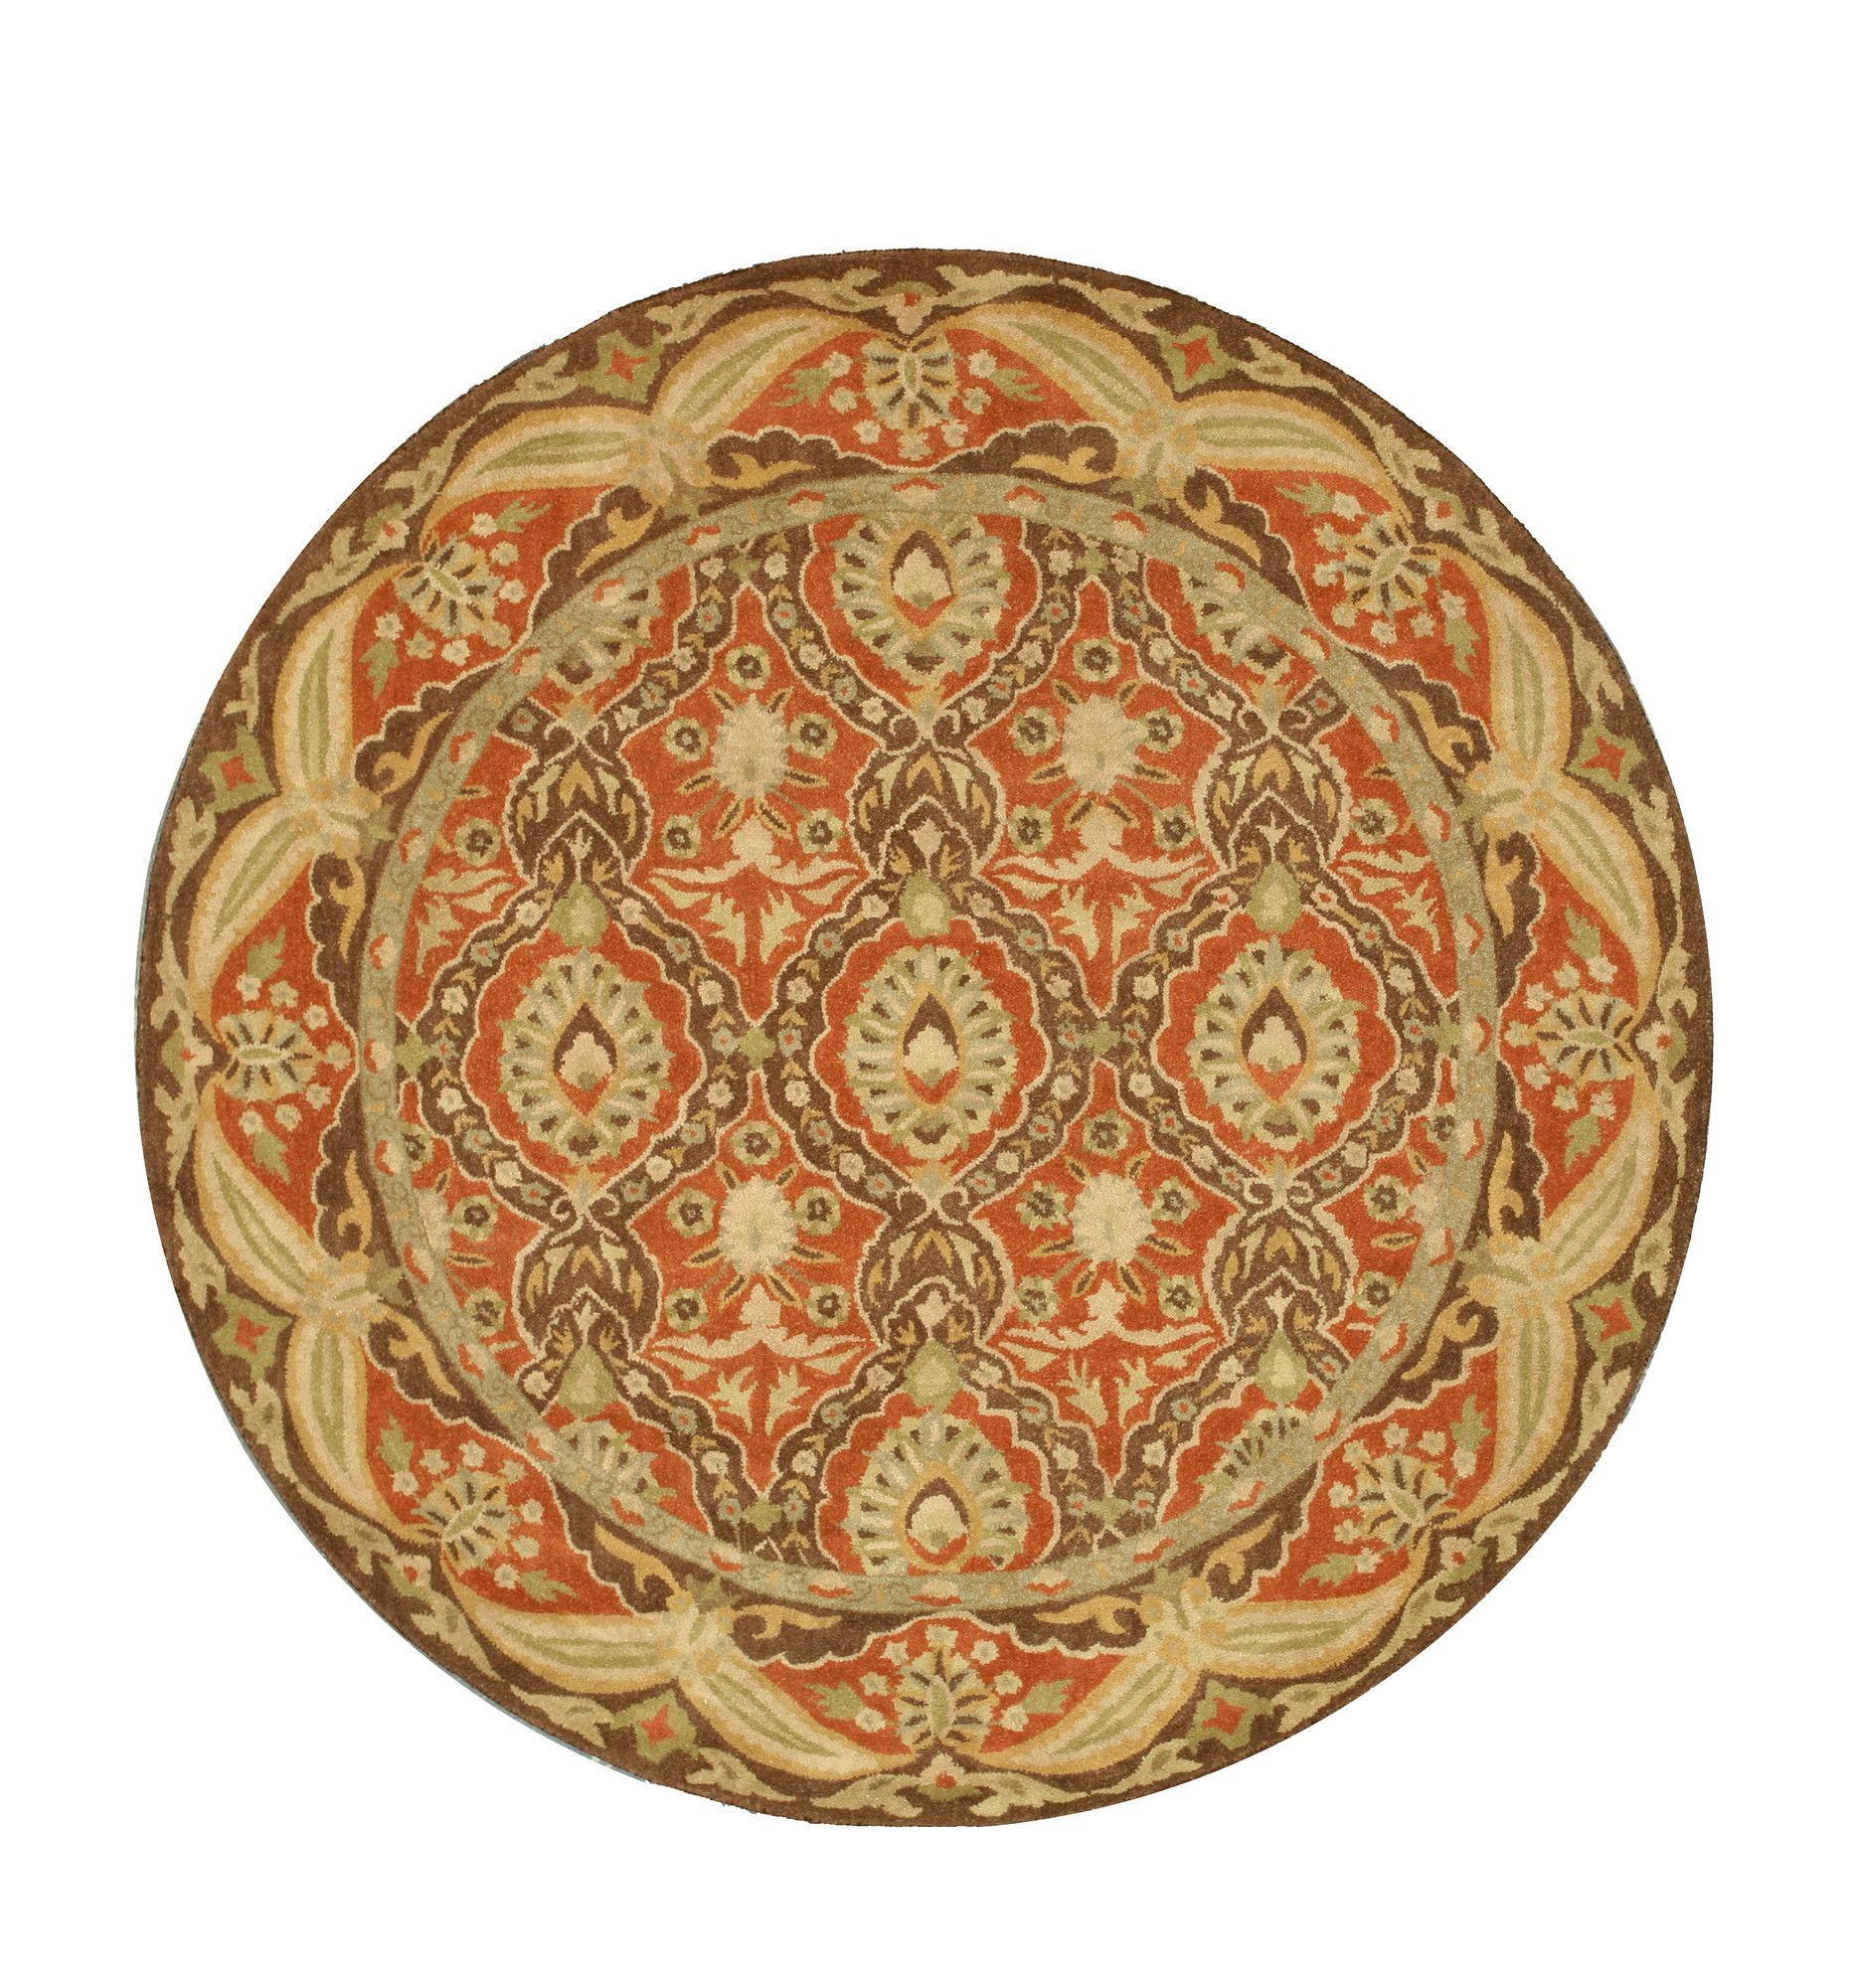 Nedumangad Hand Tufted Red Beige Area Rug Beige Area Rugs Colorful Rugs Rugs